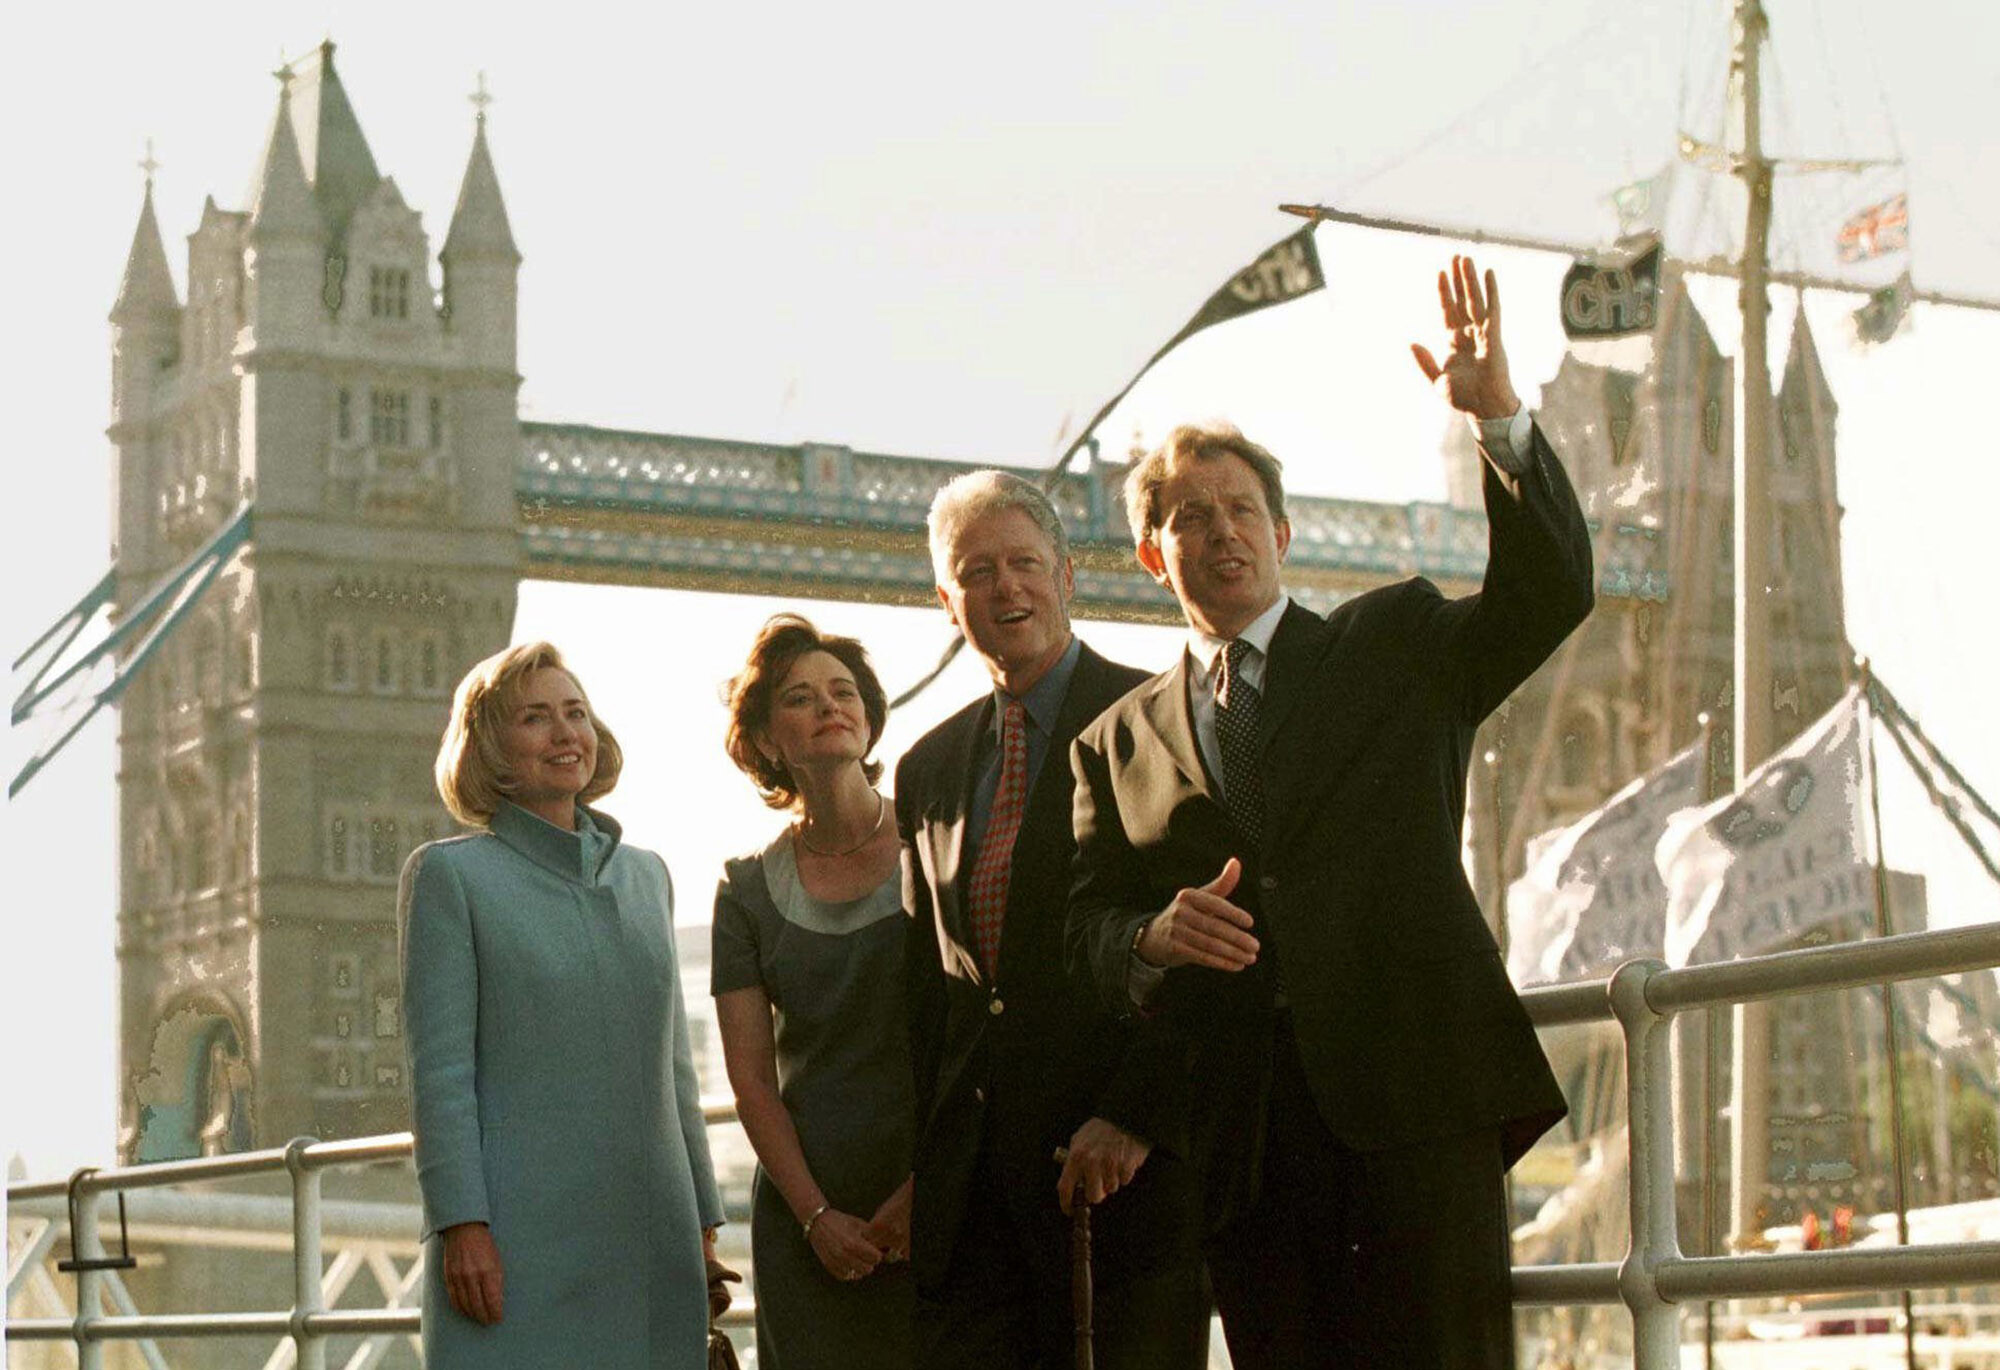 <i>Greg Gibson/AP</i><br/>US President Bill Clinton and his wife Hillary pose in front of London's Tower Bridge with British Prime Minister Tony Blair his wife Cherie